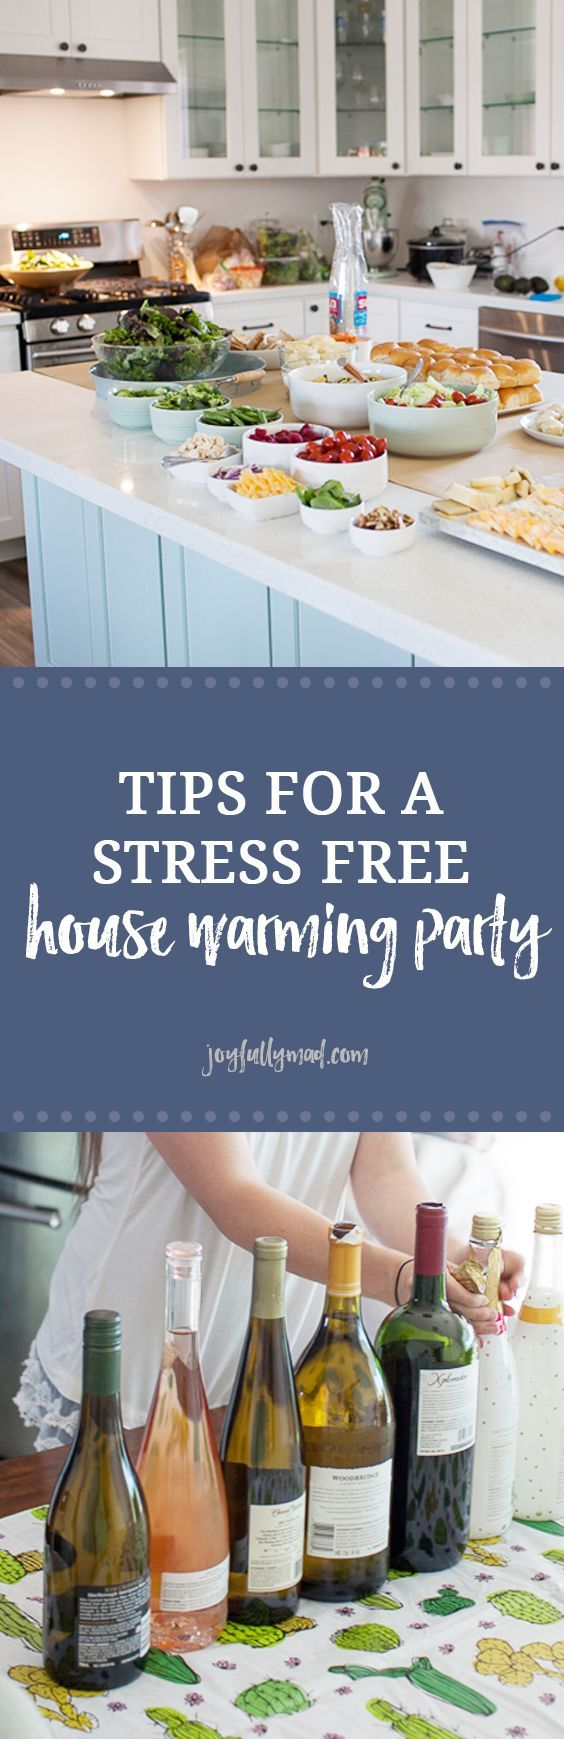 Hosting A House Warming Party Soon Here S How To Meal Plan Clean And Prep Food For Your Own Stress Housewarming Party Backyard House House Party Decorations